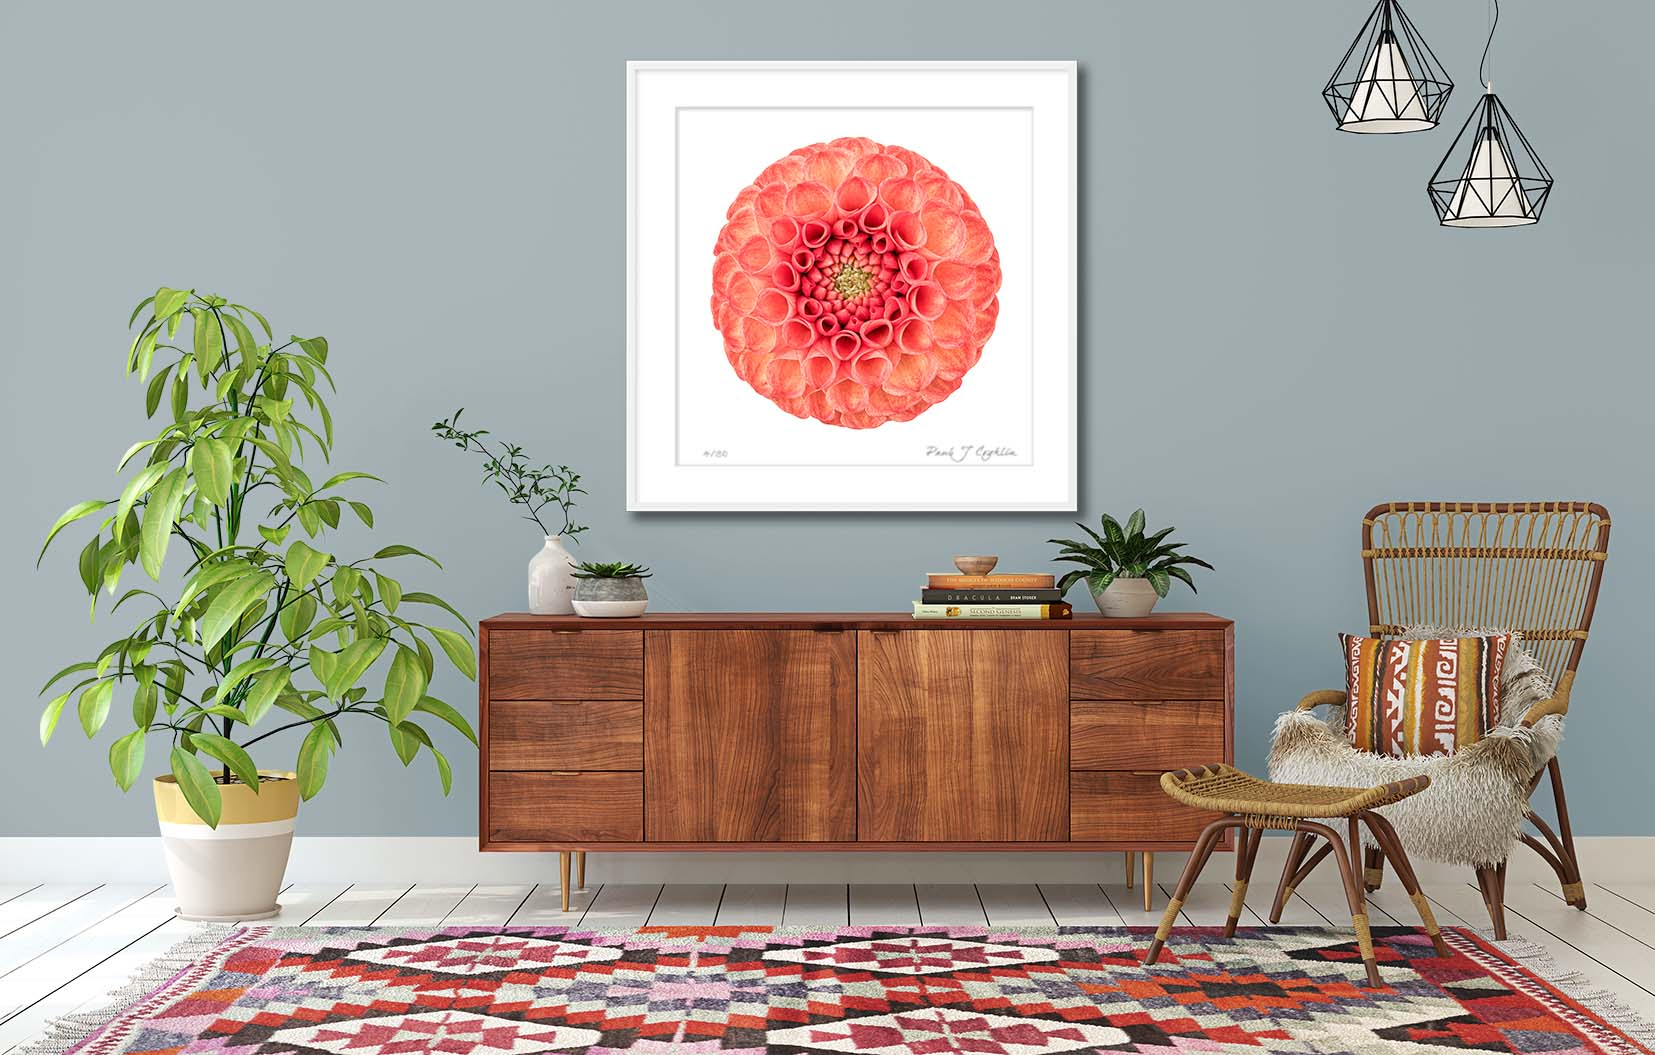 Dahlia 'Ginger Willo' II. Limited edition colour photographic print of an orange dahlia by fine art photographer Paul Coghlin FBIPP